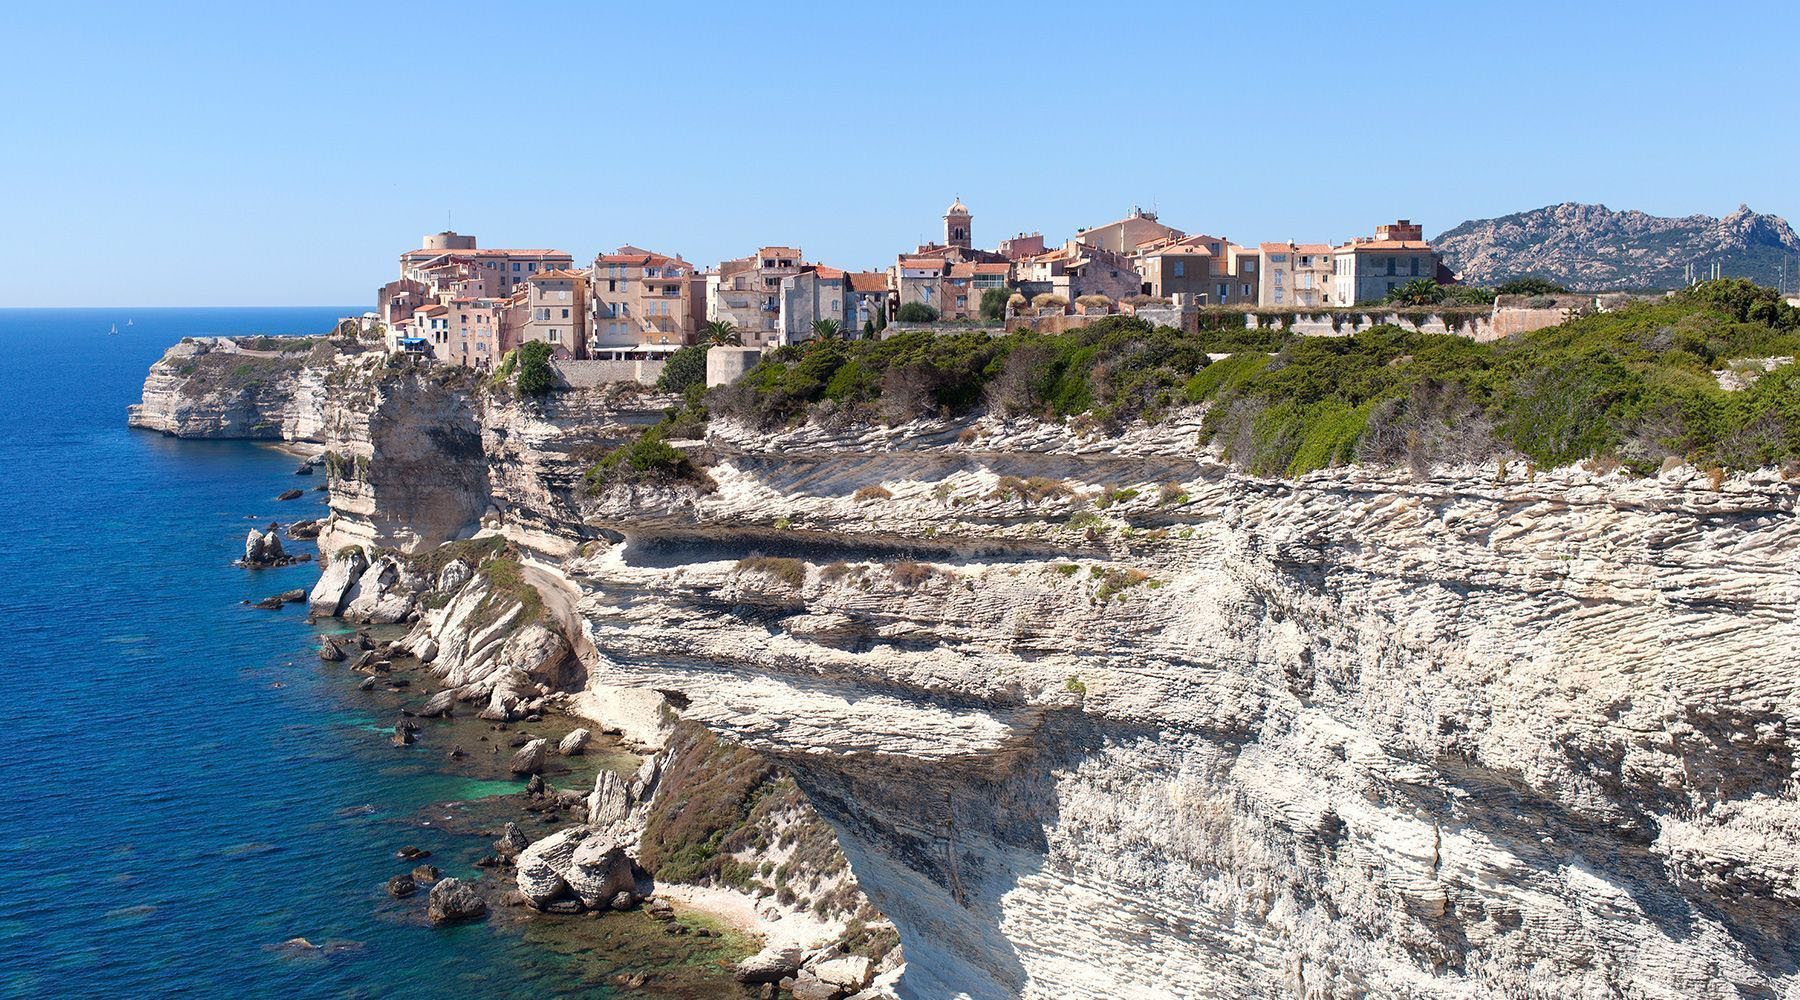 Houses on a cliff of Bonifacio Corsica, France, overlooking the Mediterranean Sea